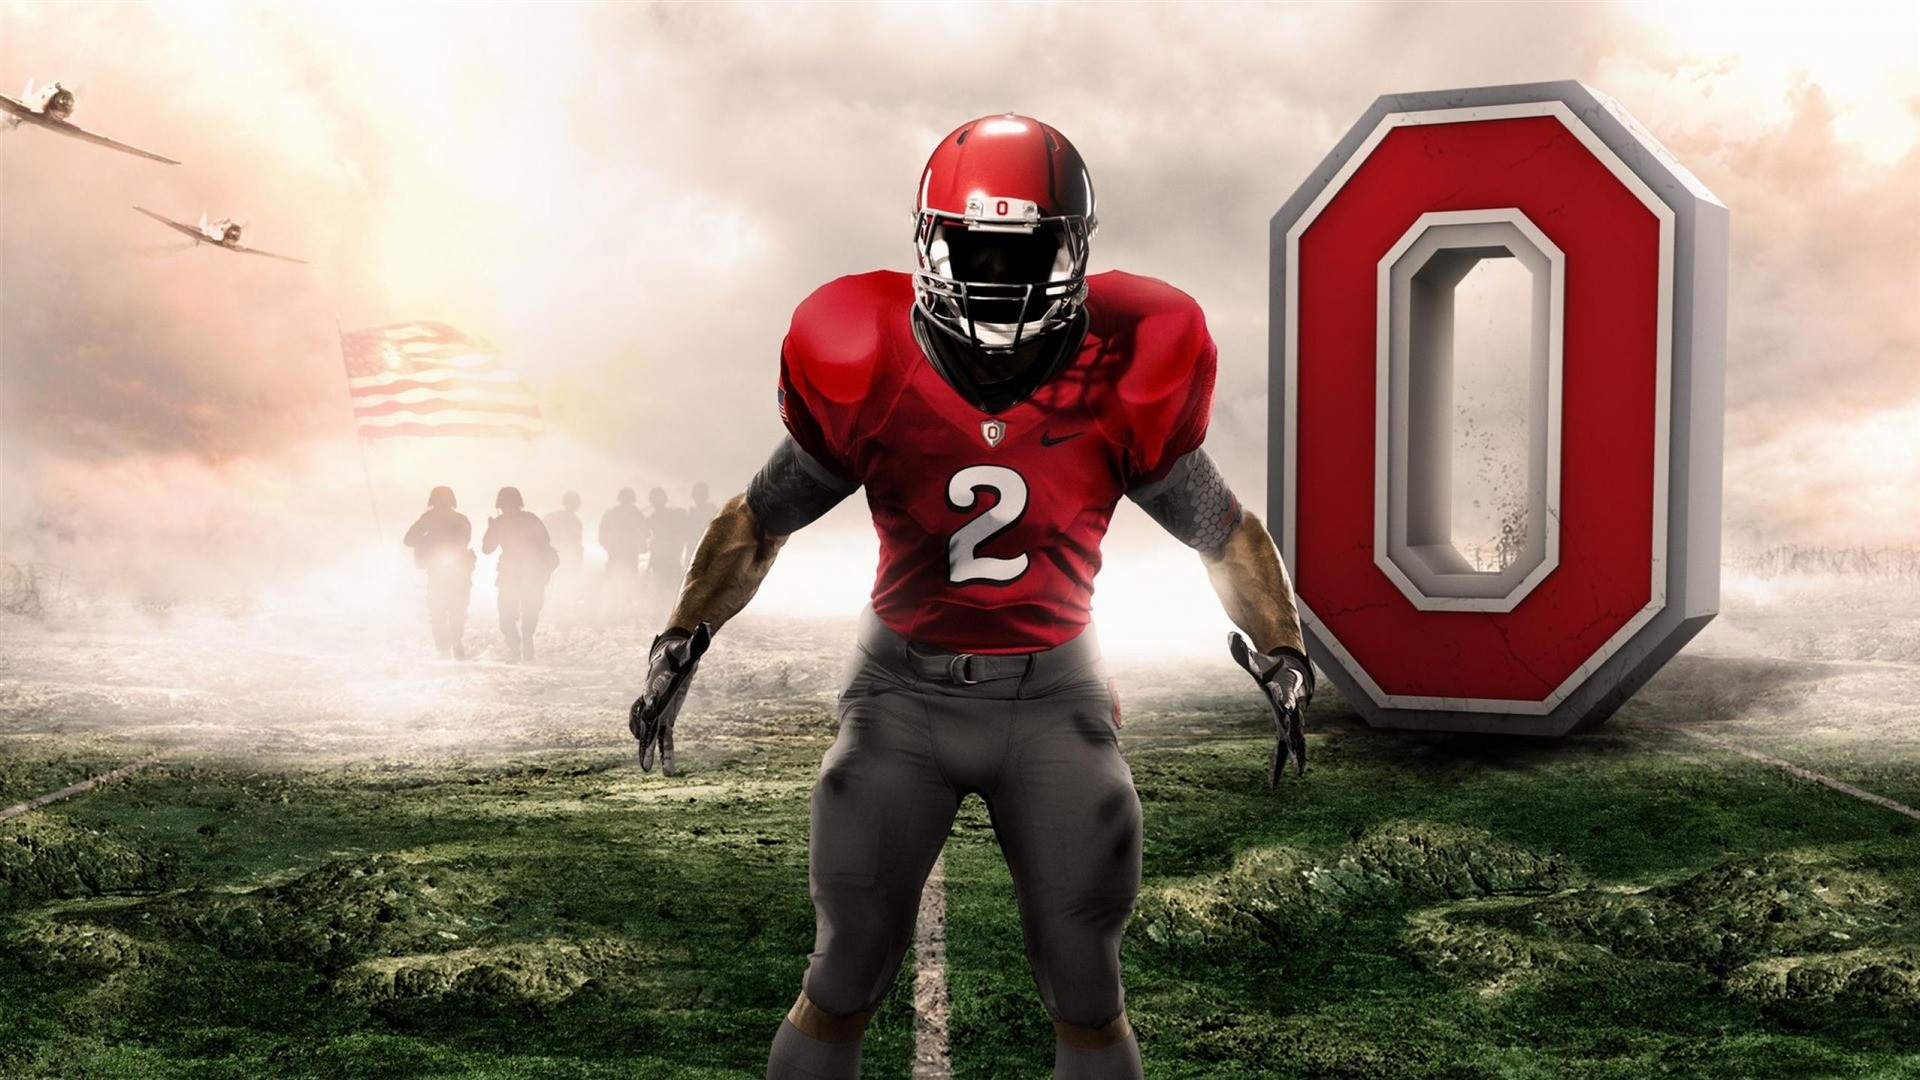 Simple Ohio State Iphone 5 Wallpaper – All For You Wallpaper Site